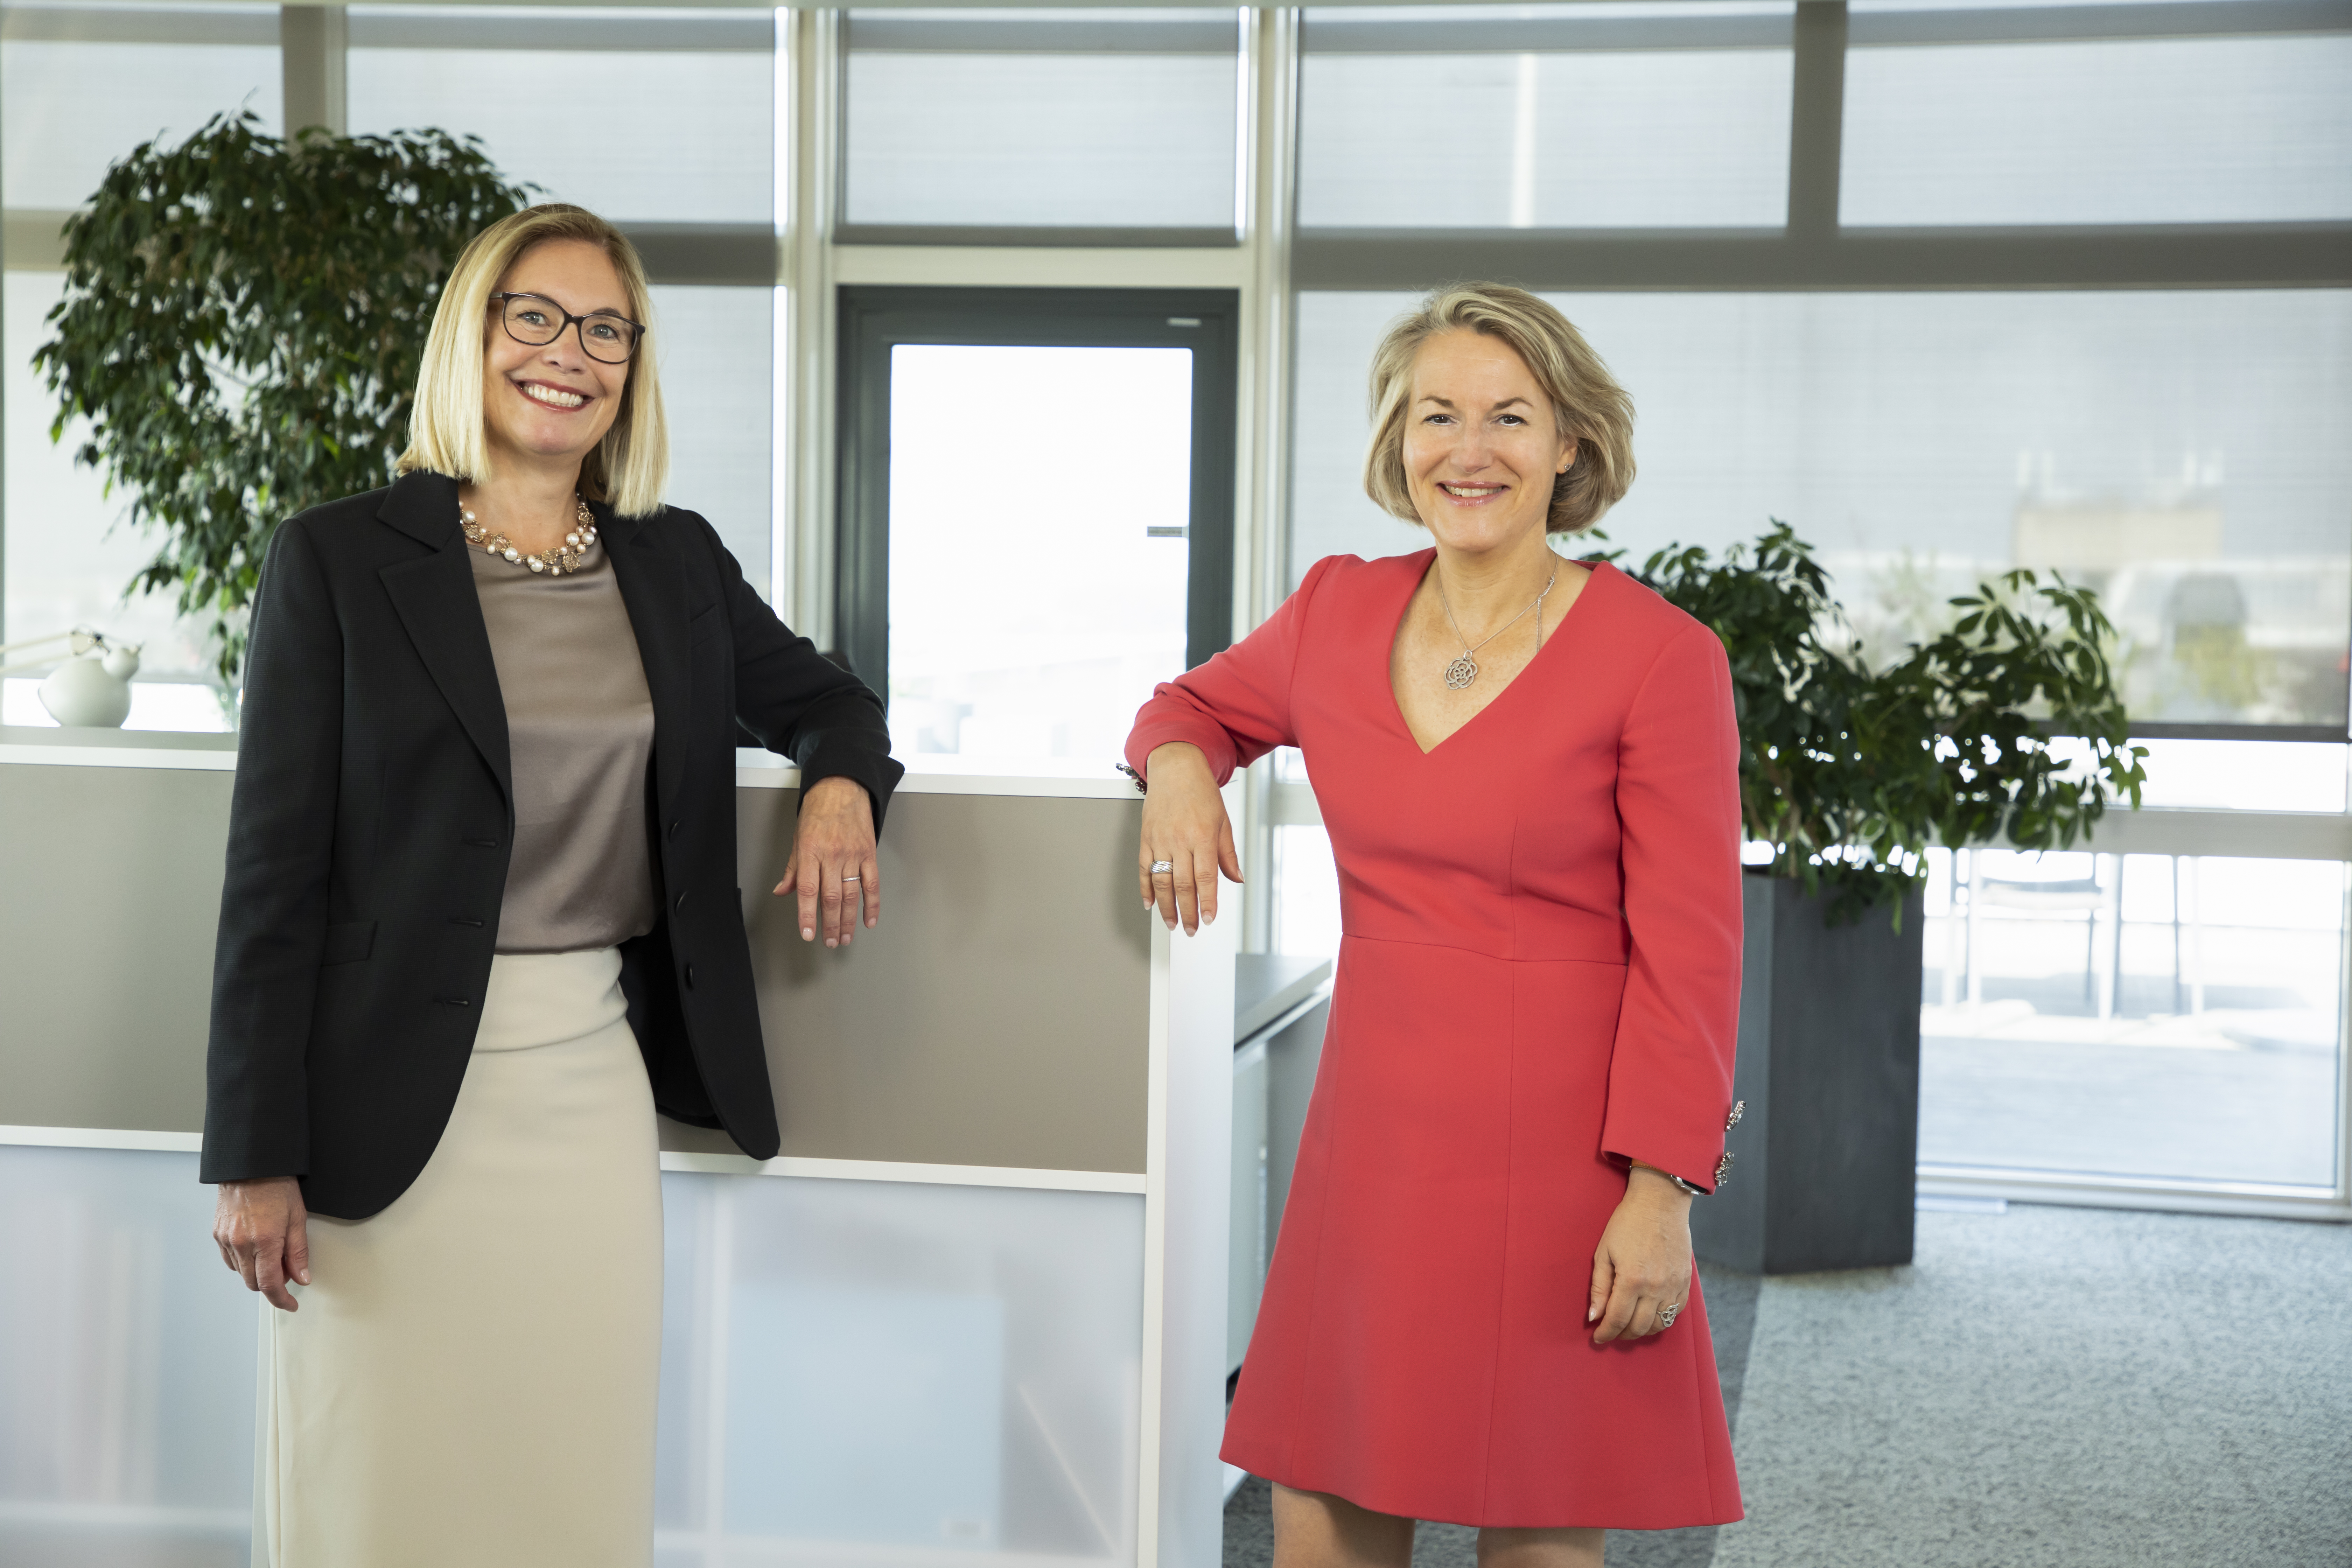 SkyTeam members unanimously commit to IATA's 25by2025 initiative to drive greater gender equality across aviation industry